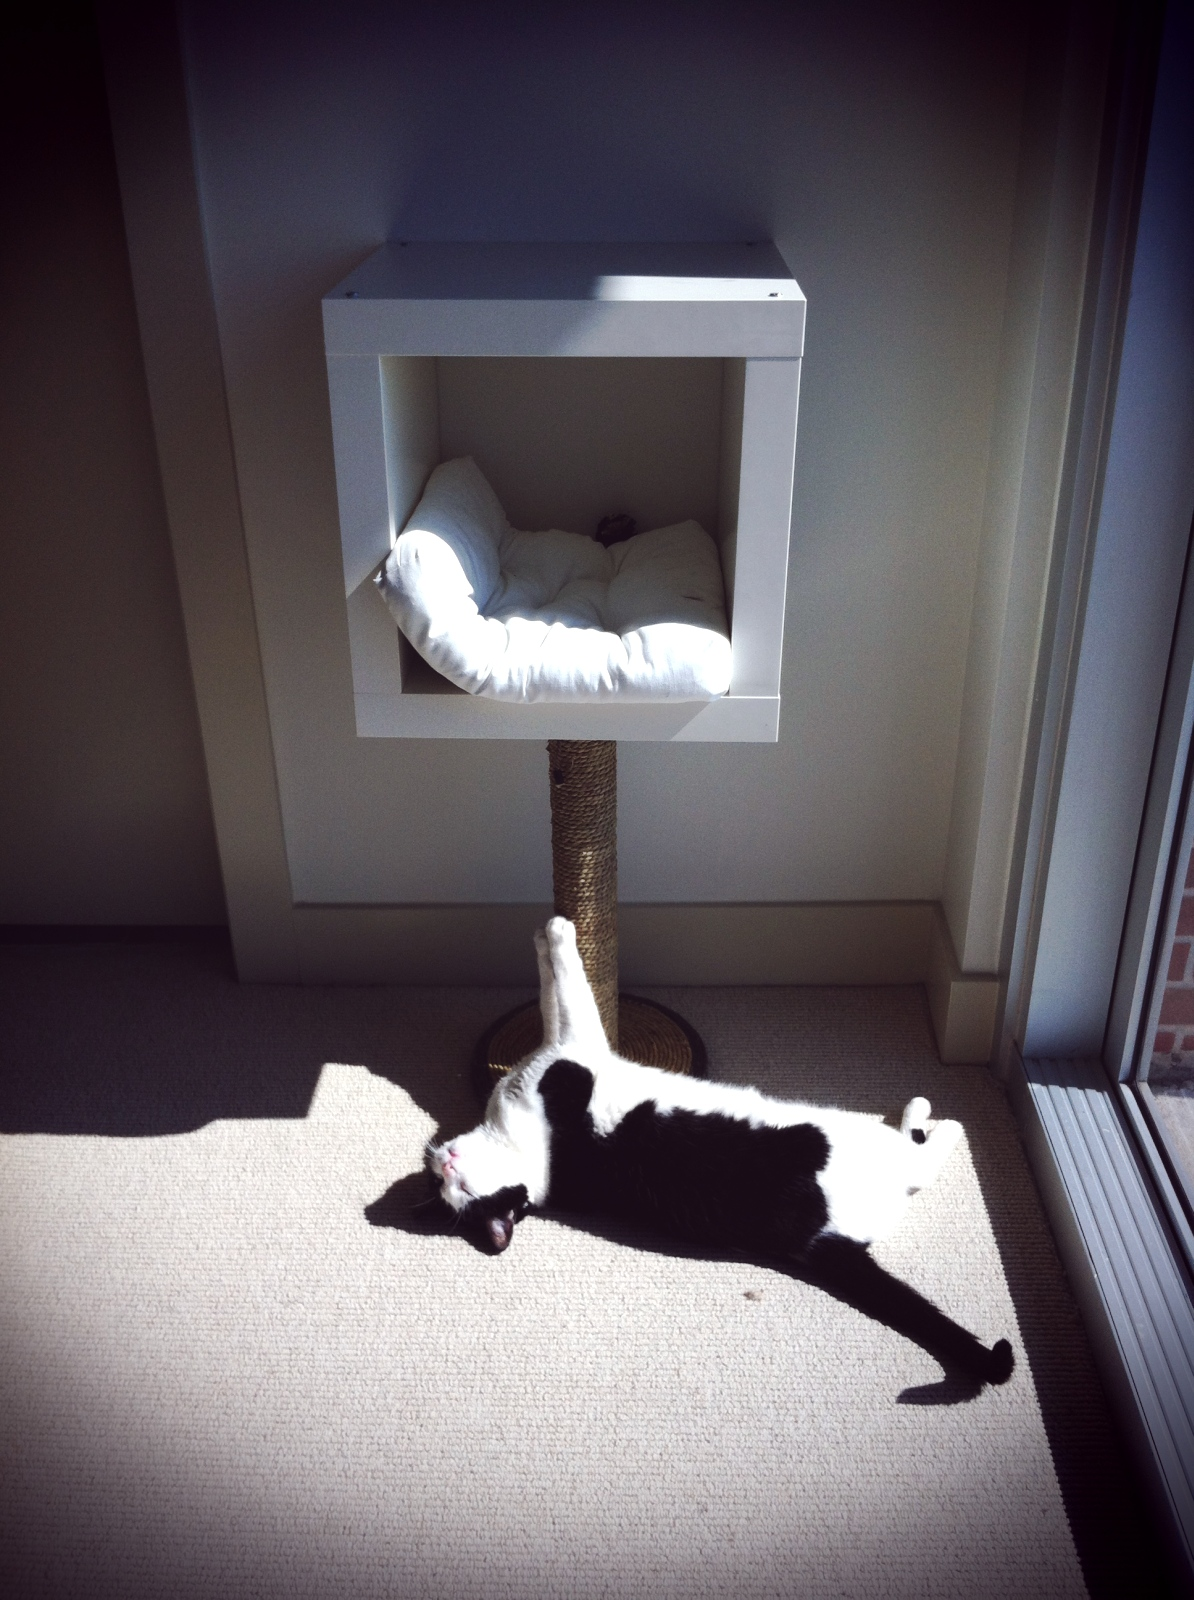 deviant housewife.: IKEA hack = modern cat bed